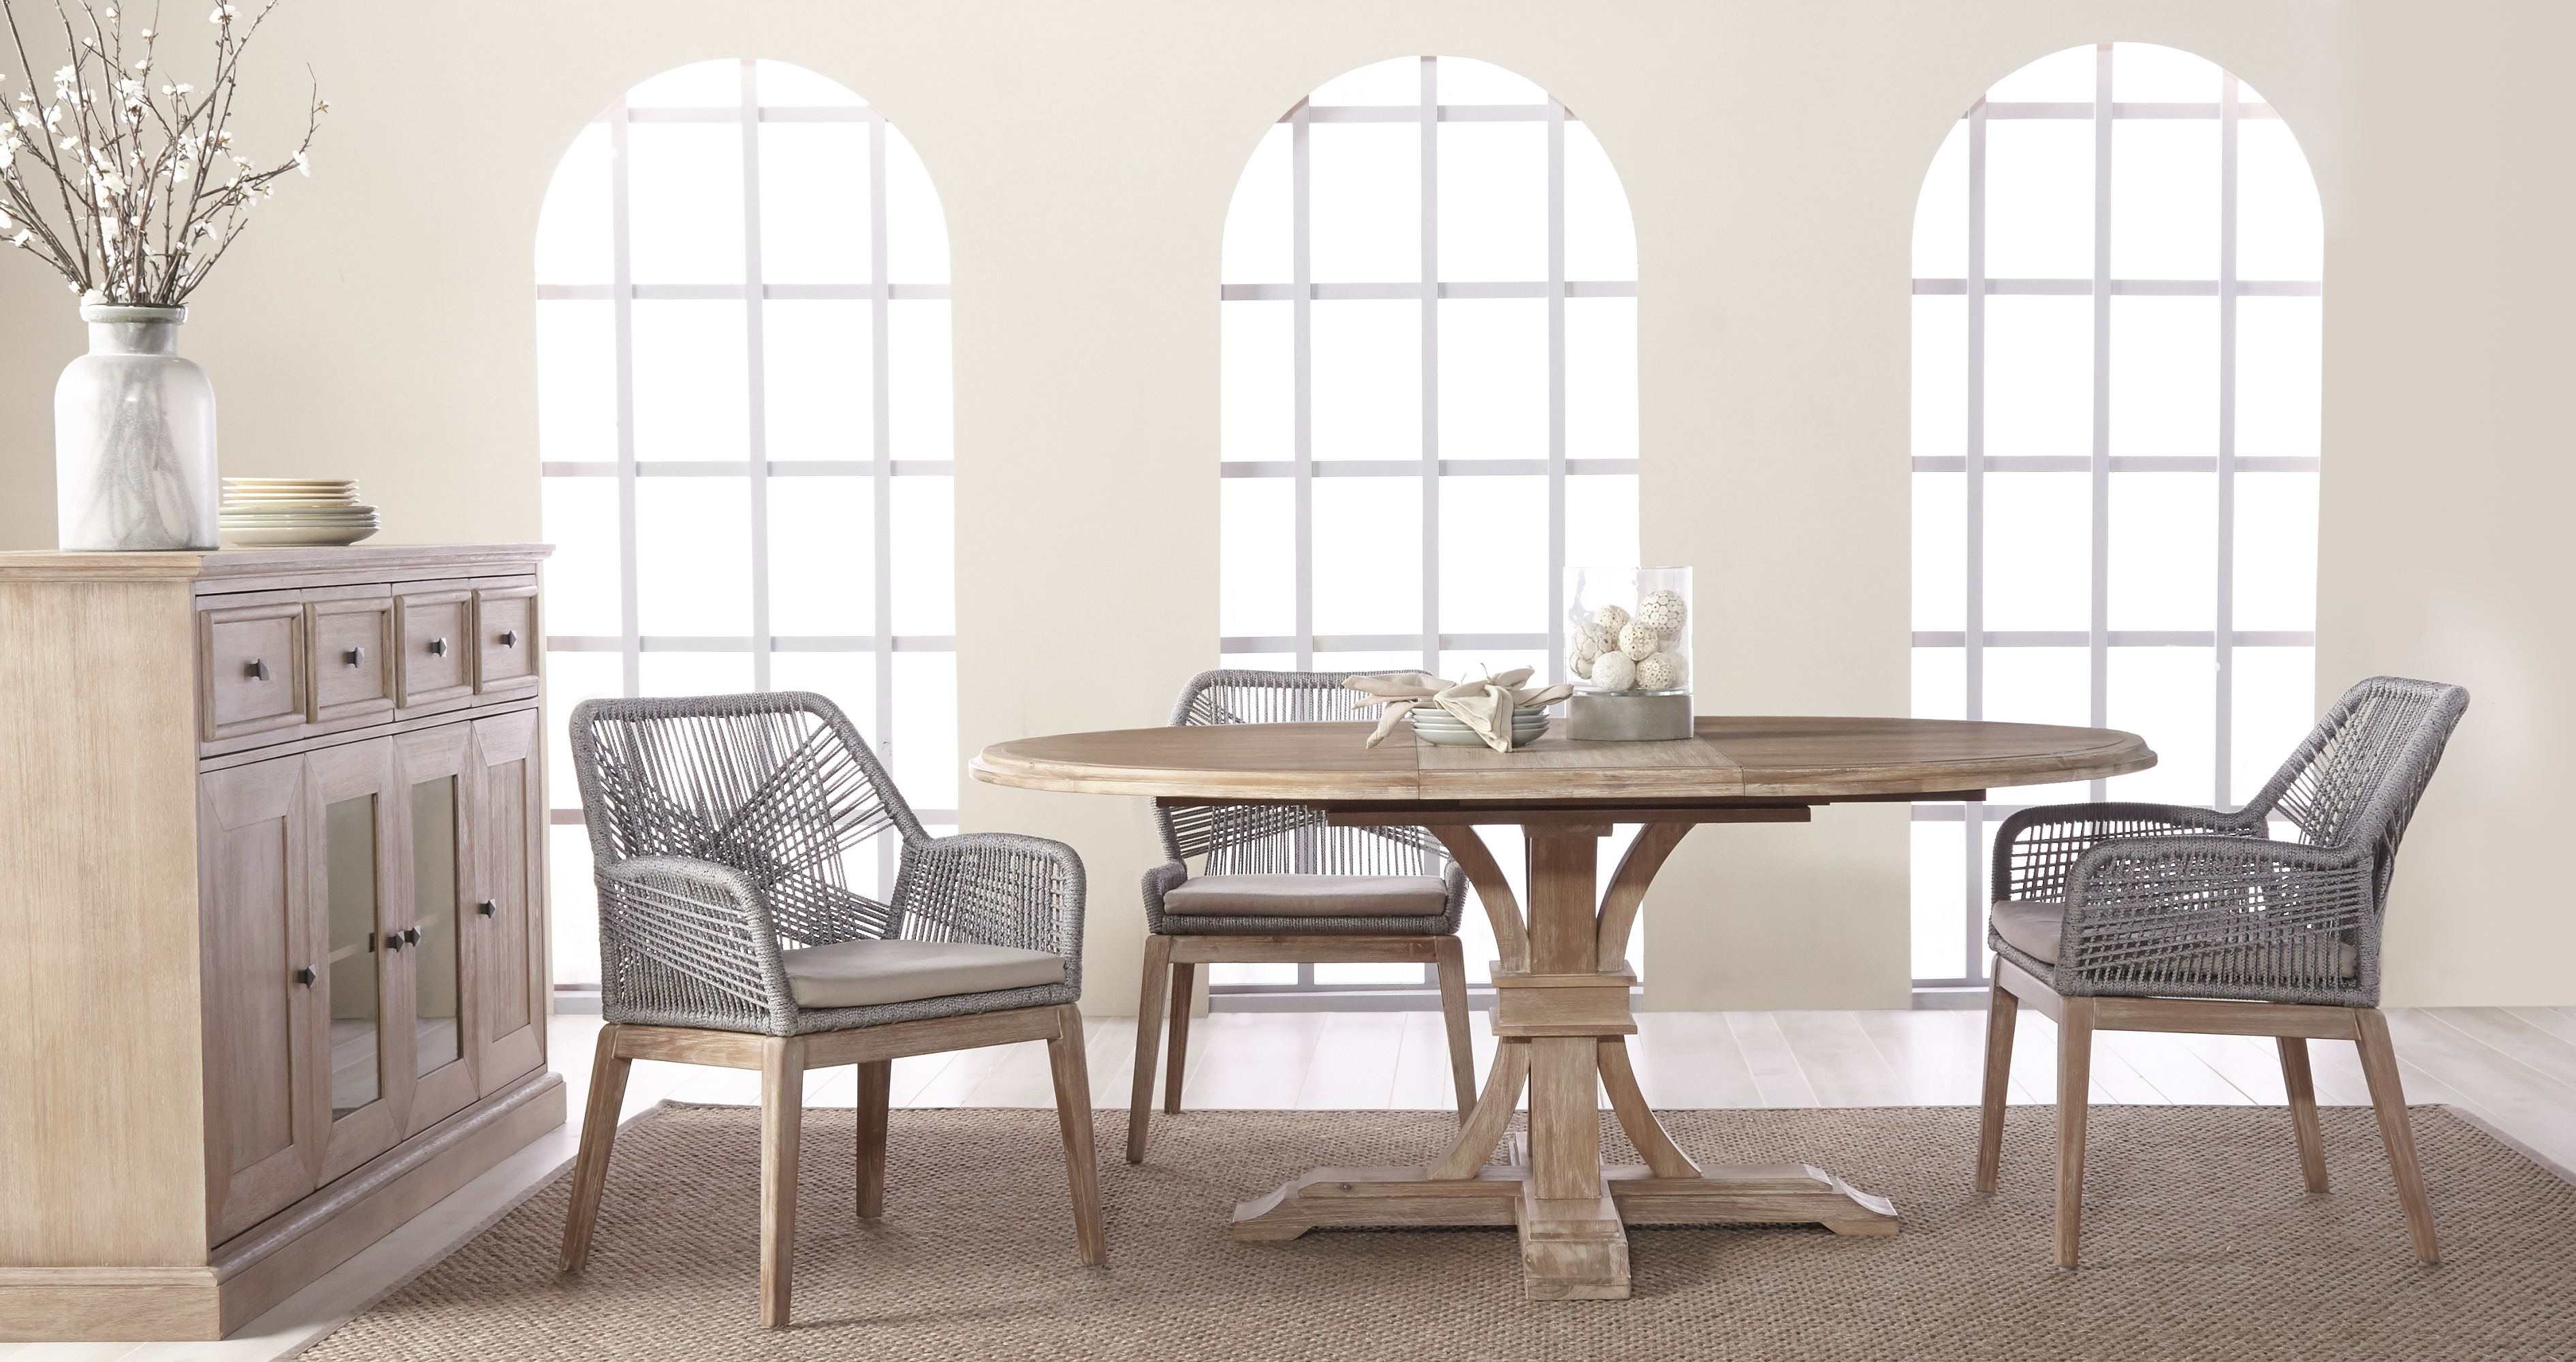 [%100+ [ Extension Dining Room Tables ] | Designs Vineyard Extension With Regard To Preferred Chapleau Extension Dining Tables|Chapleau Extension Dining Tables In Preferred 100+ [ Extension Dining Room Tables ] | Designs Vineyard Extension|2017 Chapleau Extension Dining Tables Throughout 100+ [ Extension Dining Room Tables ] | Designs Vineyard Extension|Preferred 100+ [ Extension Dining Room Tables ] | Designs Vineyard Extension Inside Chapleau Extension Dining Tables%] (View 18 of 25)